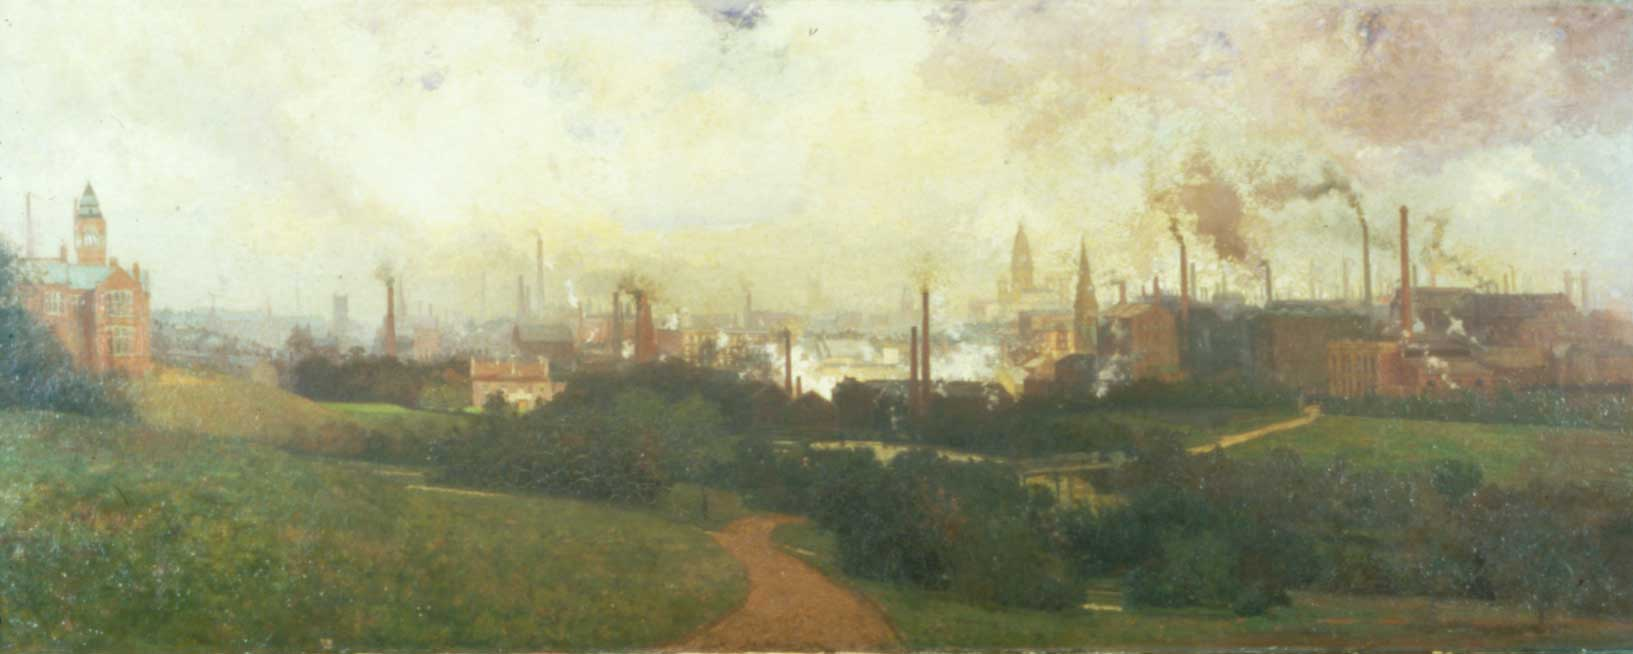 Bolton from Queen's Park